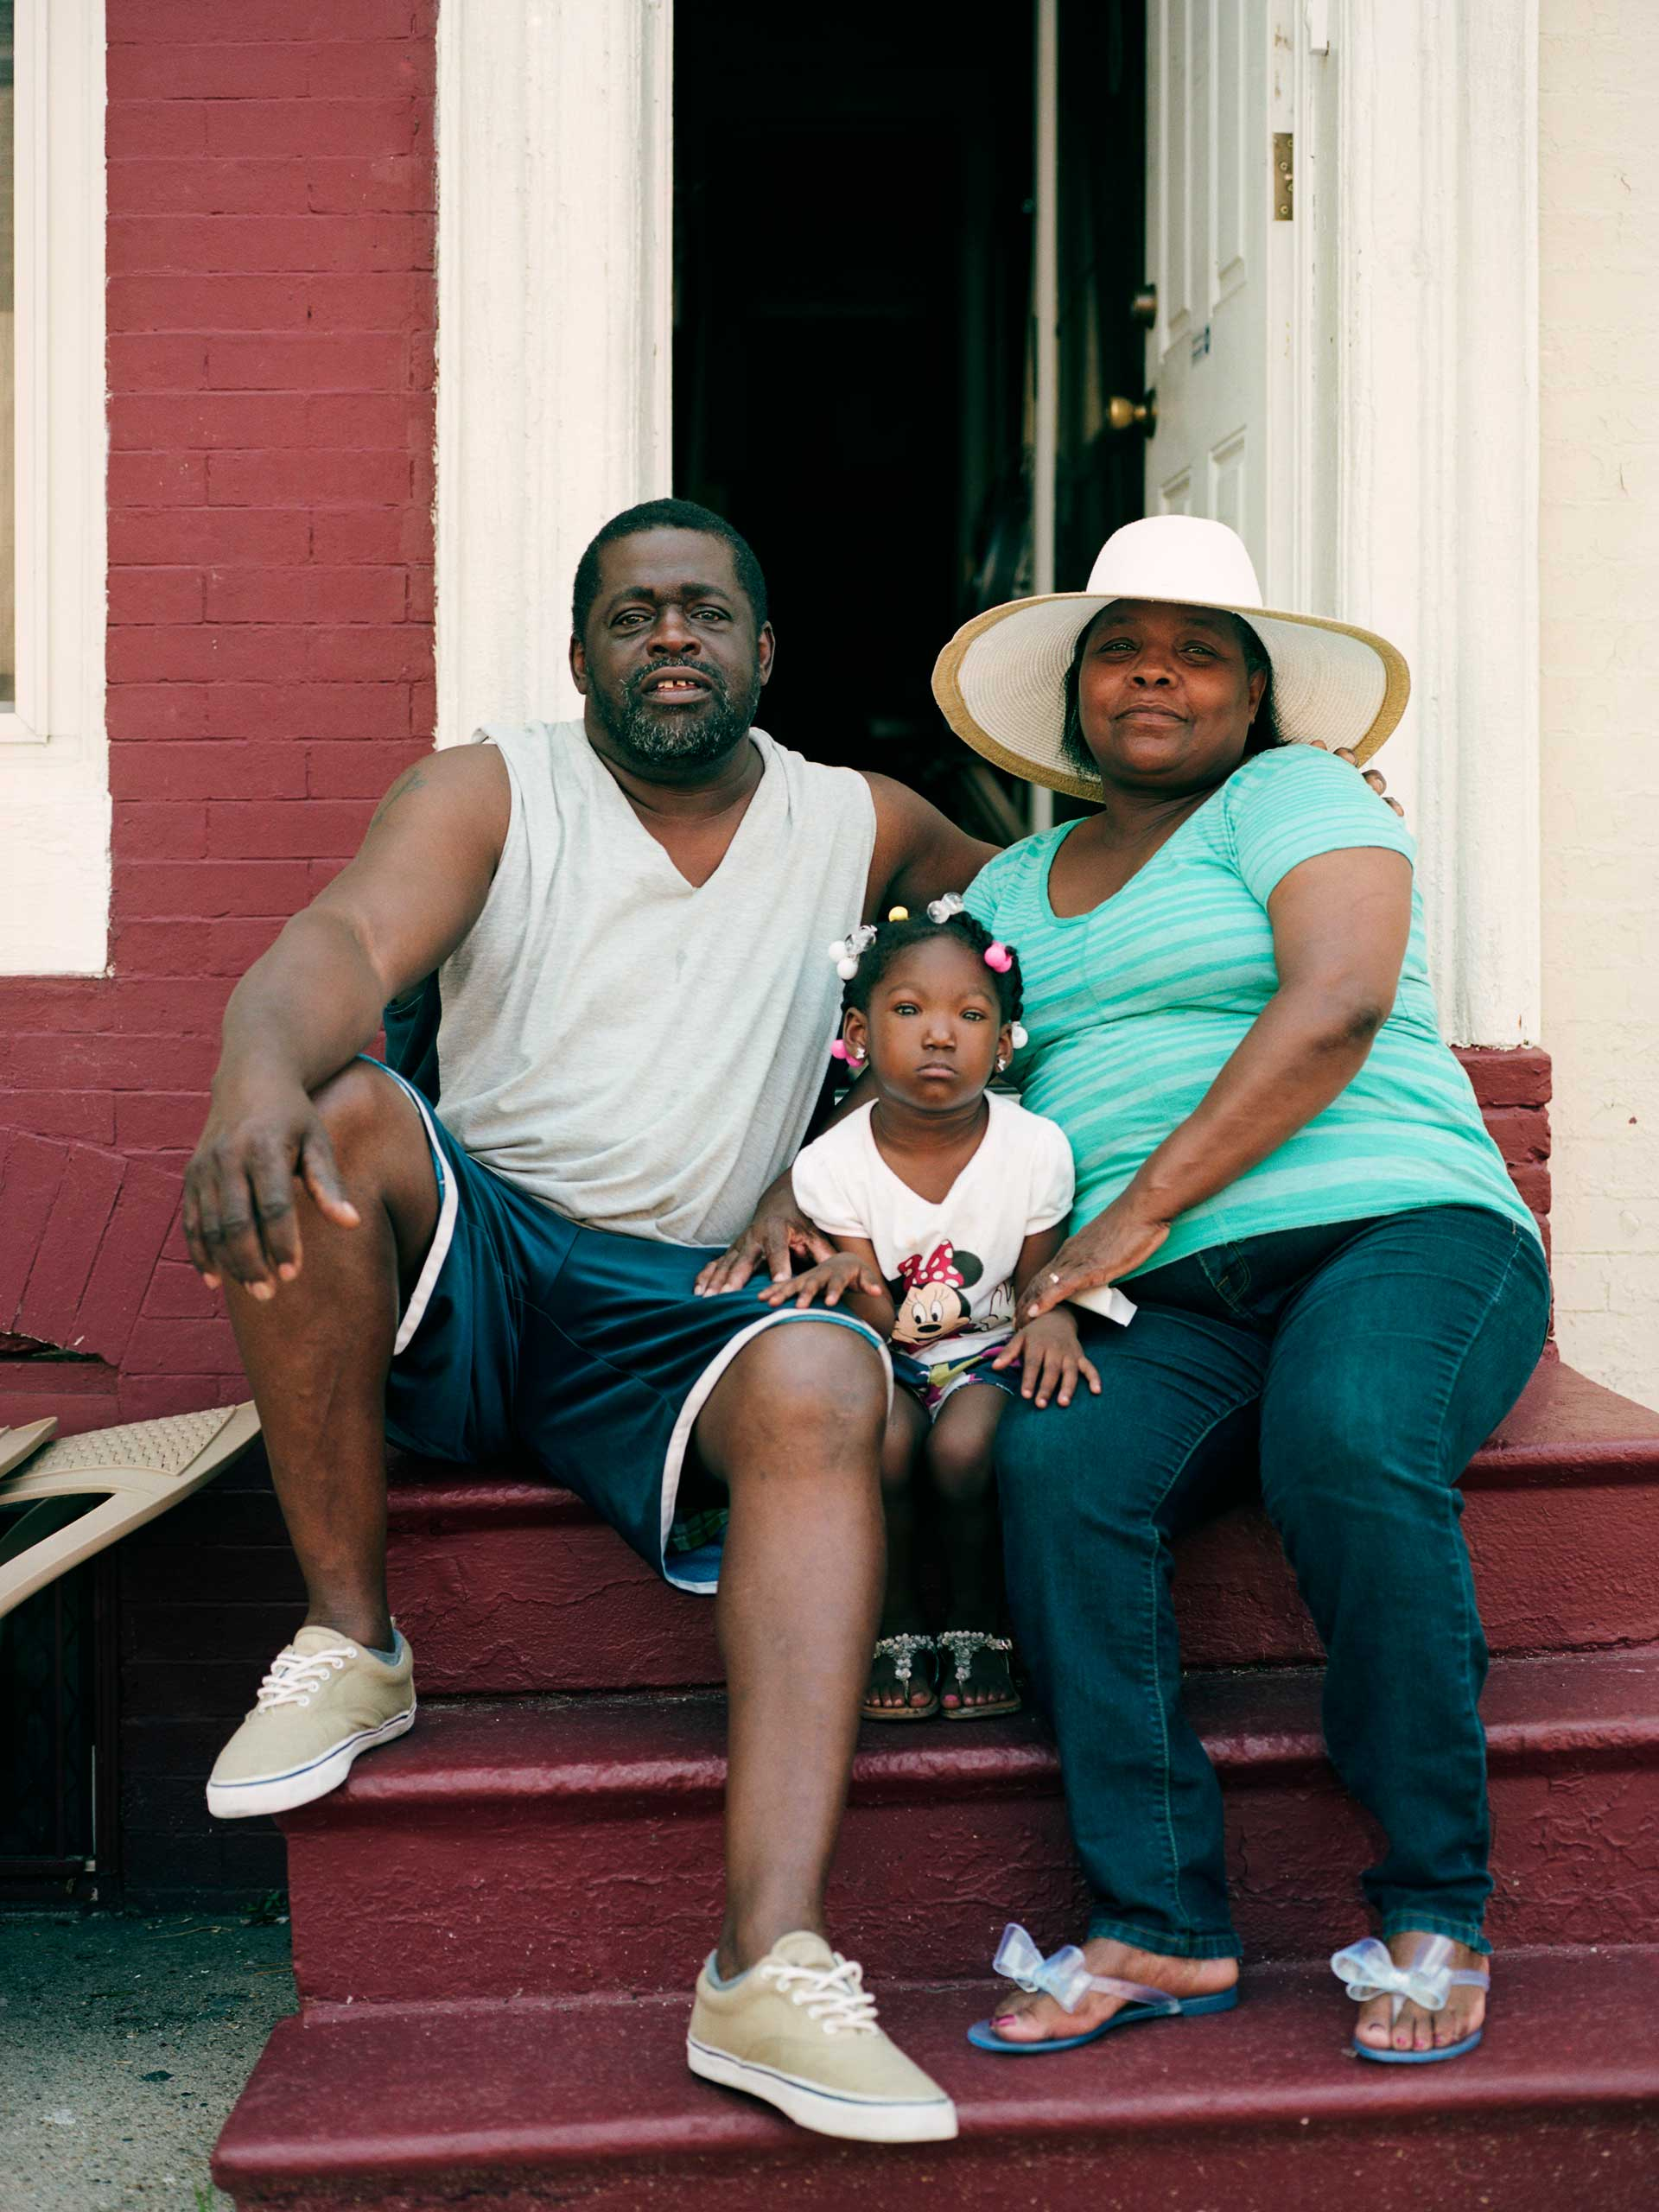 Kurt and Loretta Gardner sit on their stoop along with neighbor Jaelynn Harrison, 3. The Gardners have lived in this home on Laurens Street for over two decades and for years have sponsored an annual back to school block party over Labor Day weekend where they give away food, school clothes and supplies to families who need assistance.